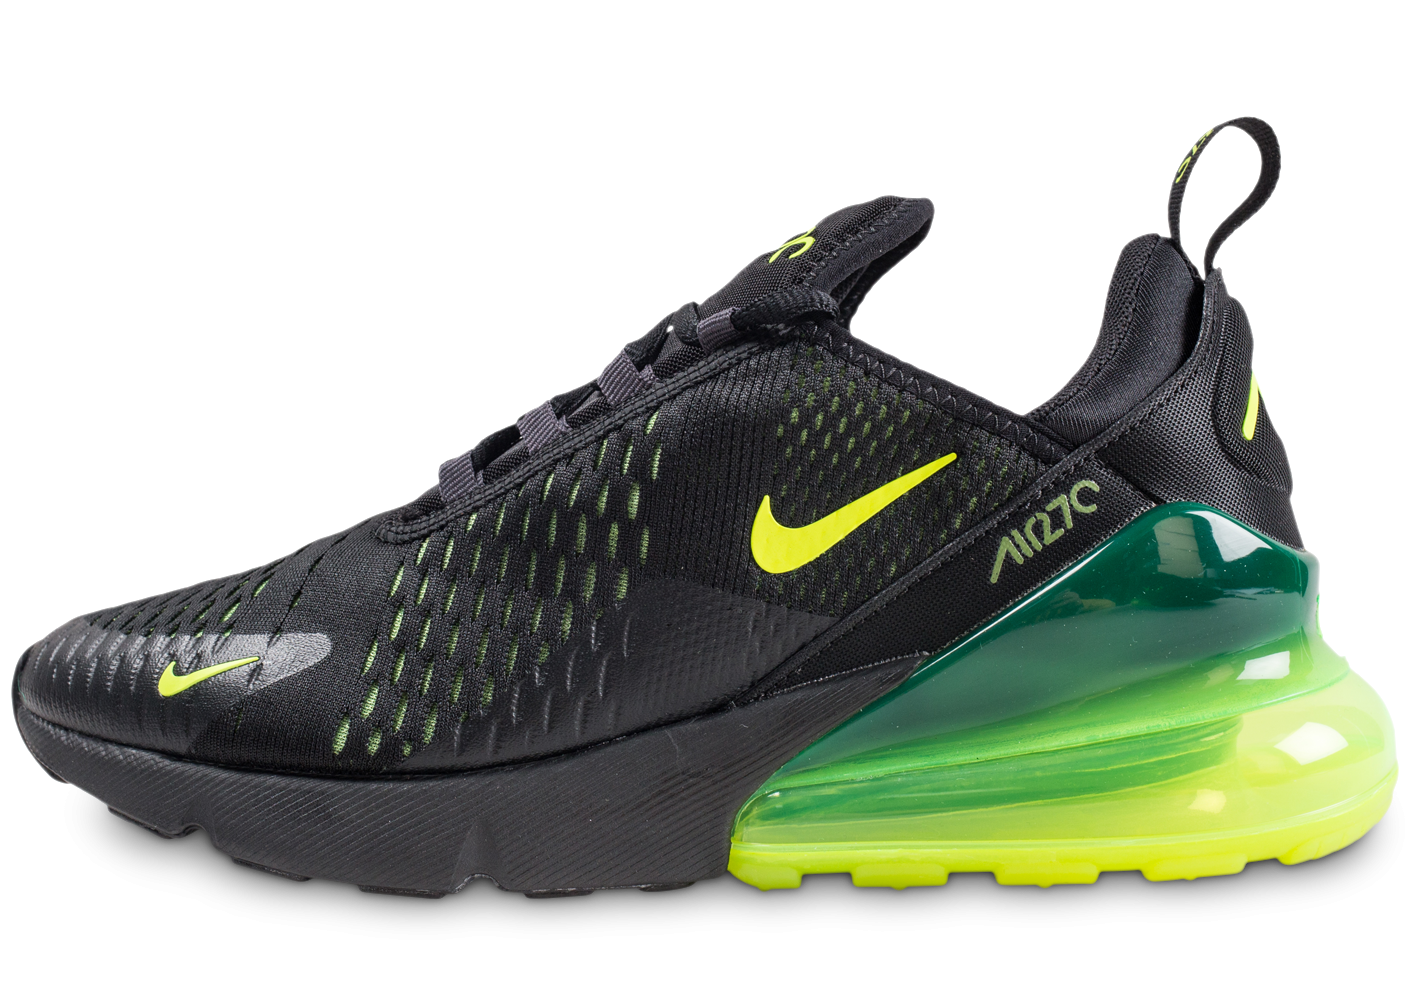 reputable site 6ae77 844c1 Nike Air Max 270 noire volt - Chaussures Baskets homme - Chausport